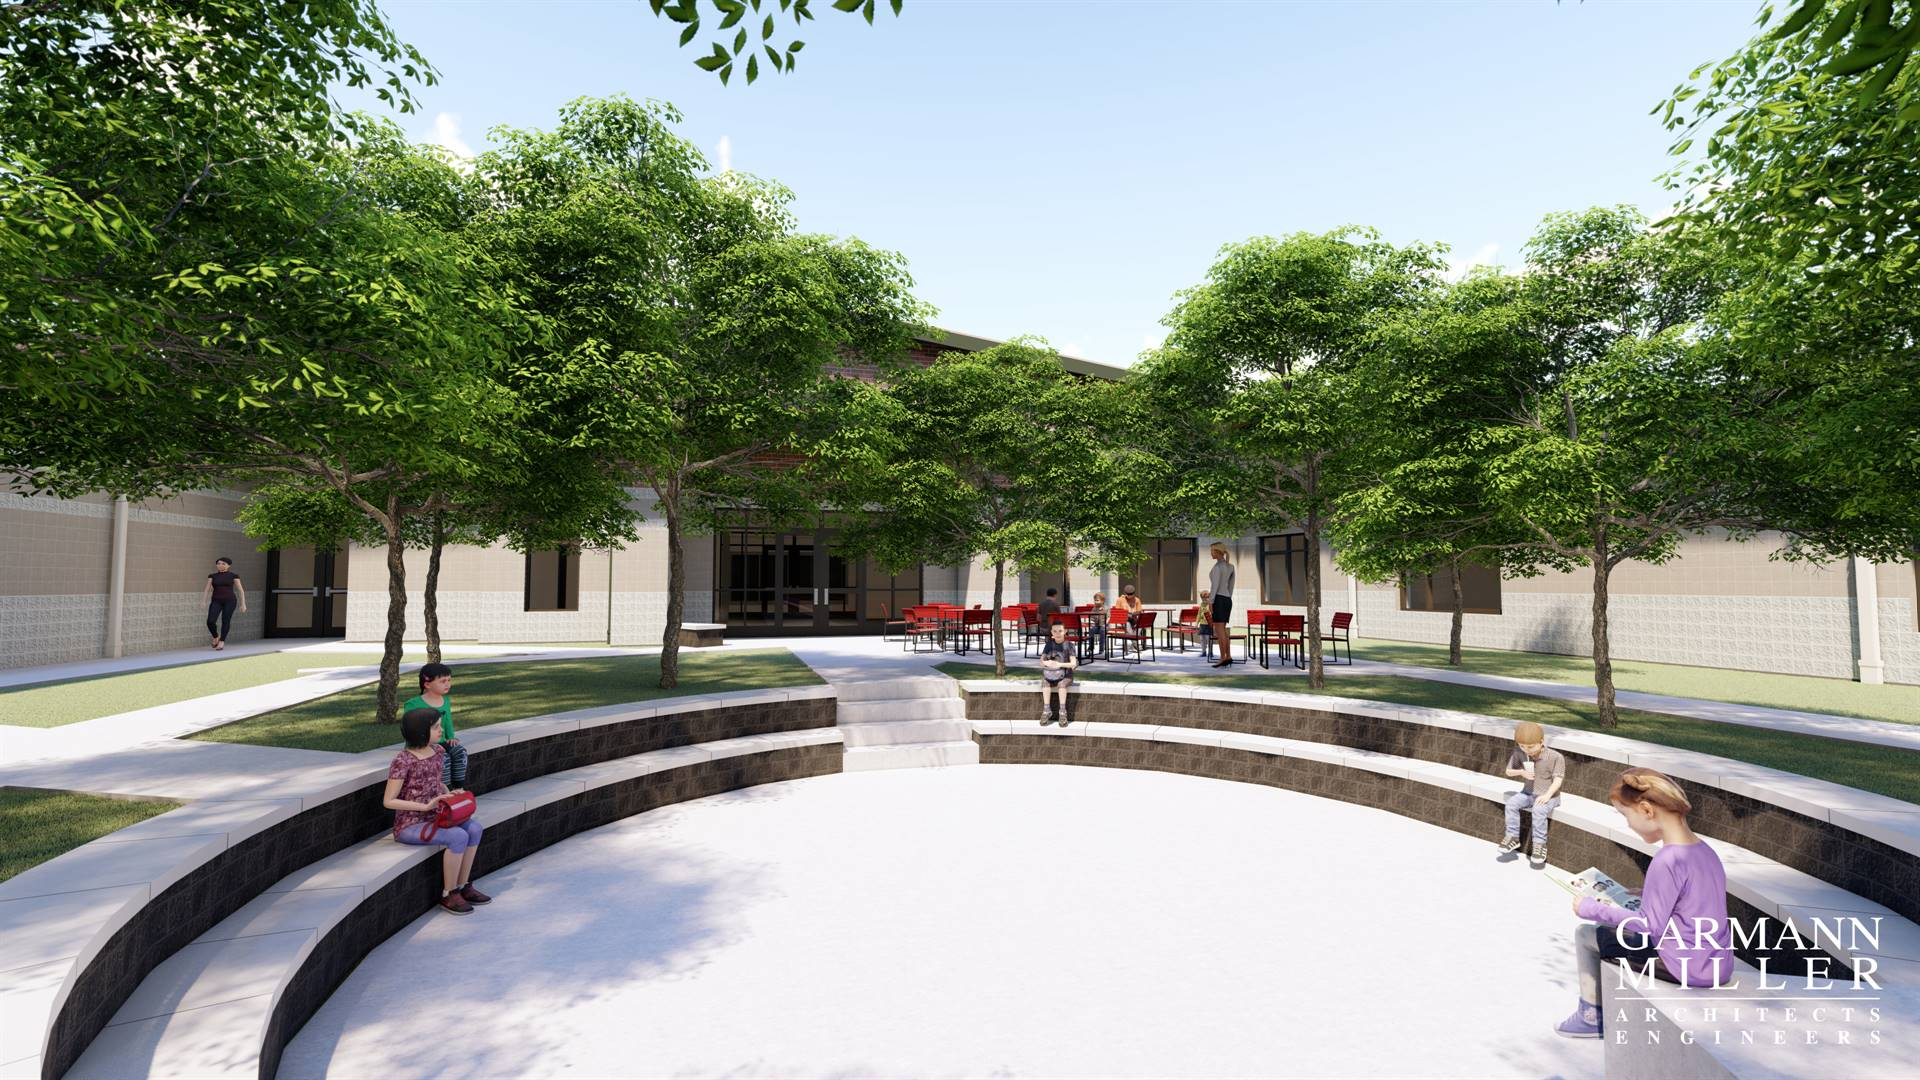 Main Courtyard View of the Proposed K-8 Building